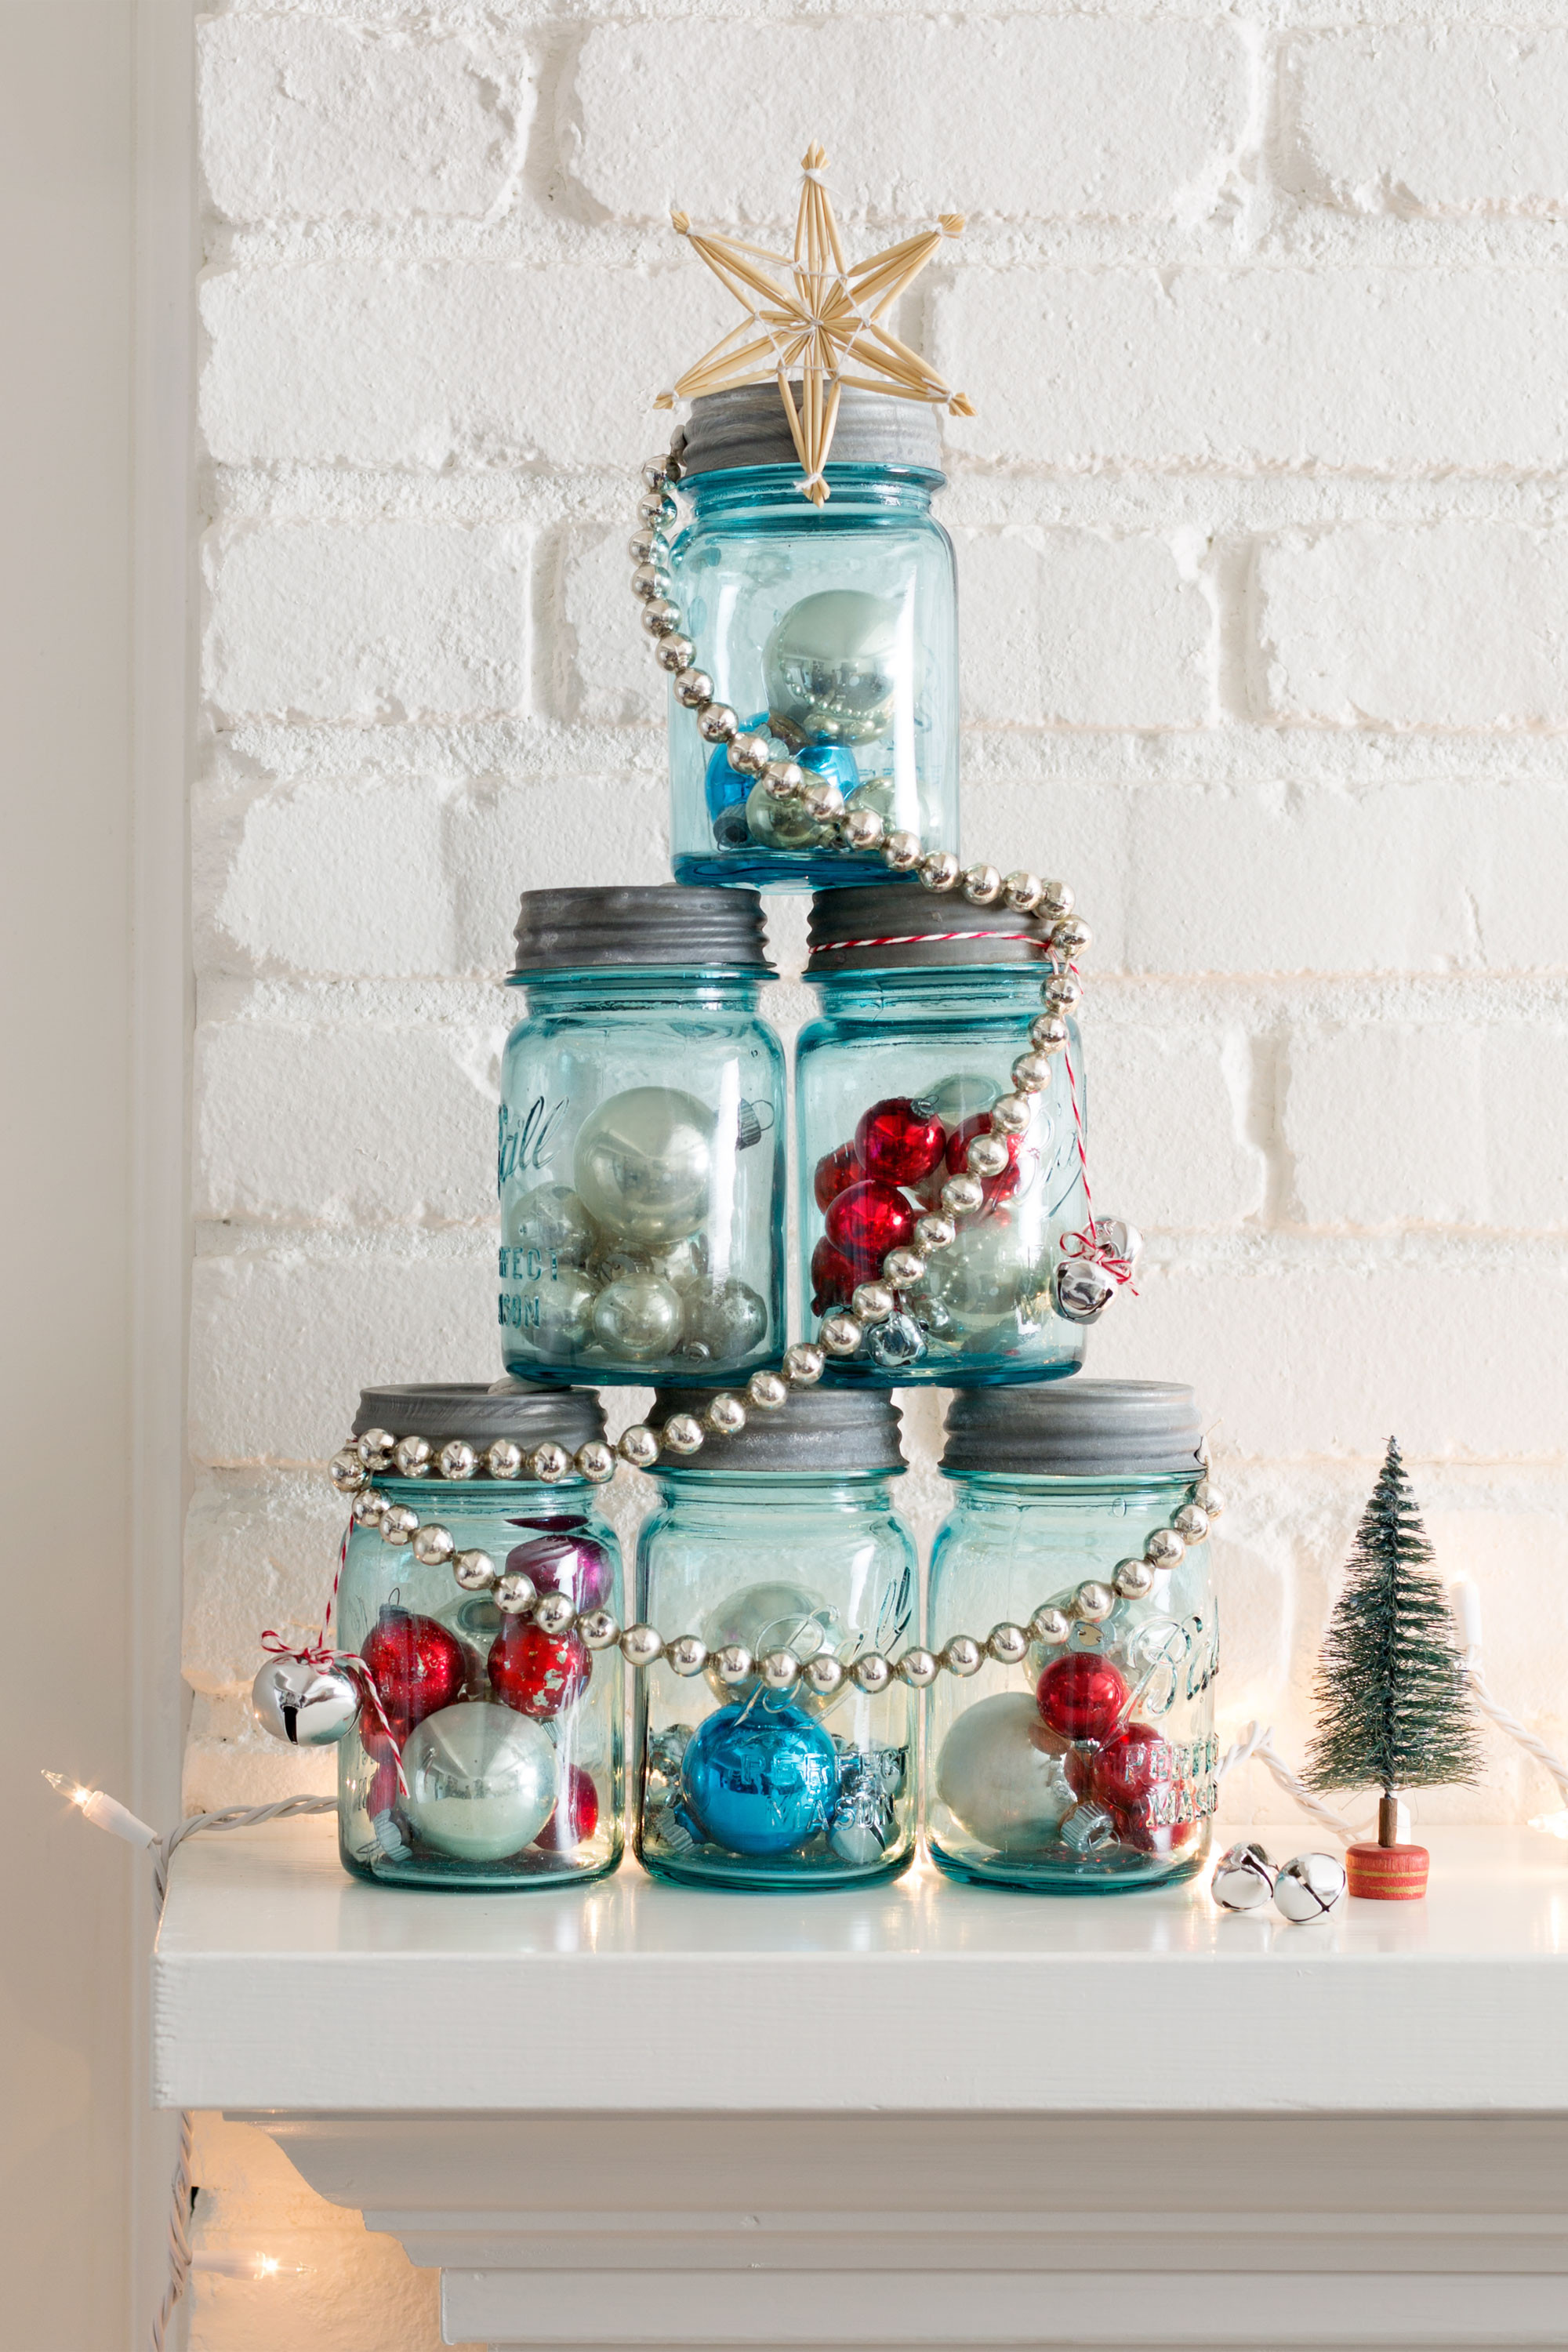 Best ideas about Christmas DIY Decorations . Save or Pin 37 DIY Homemade Christmas Decorations Christmas Decor Now.